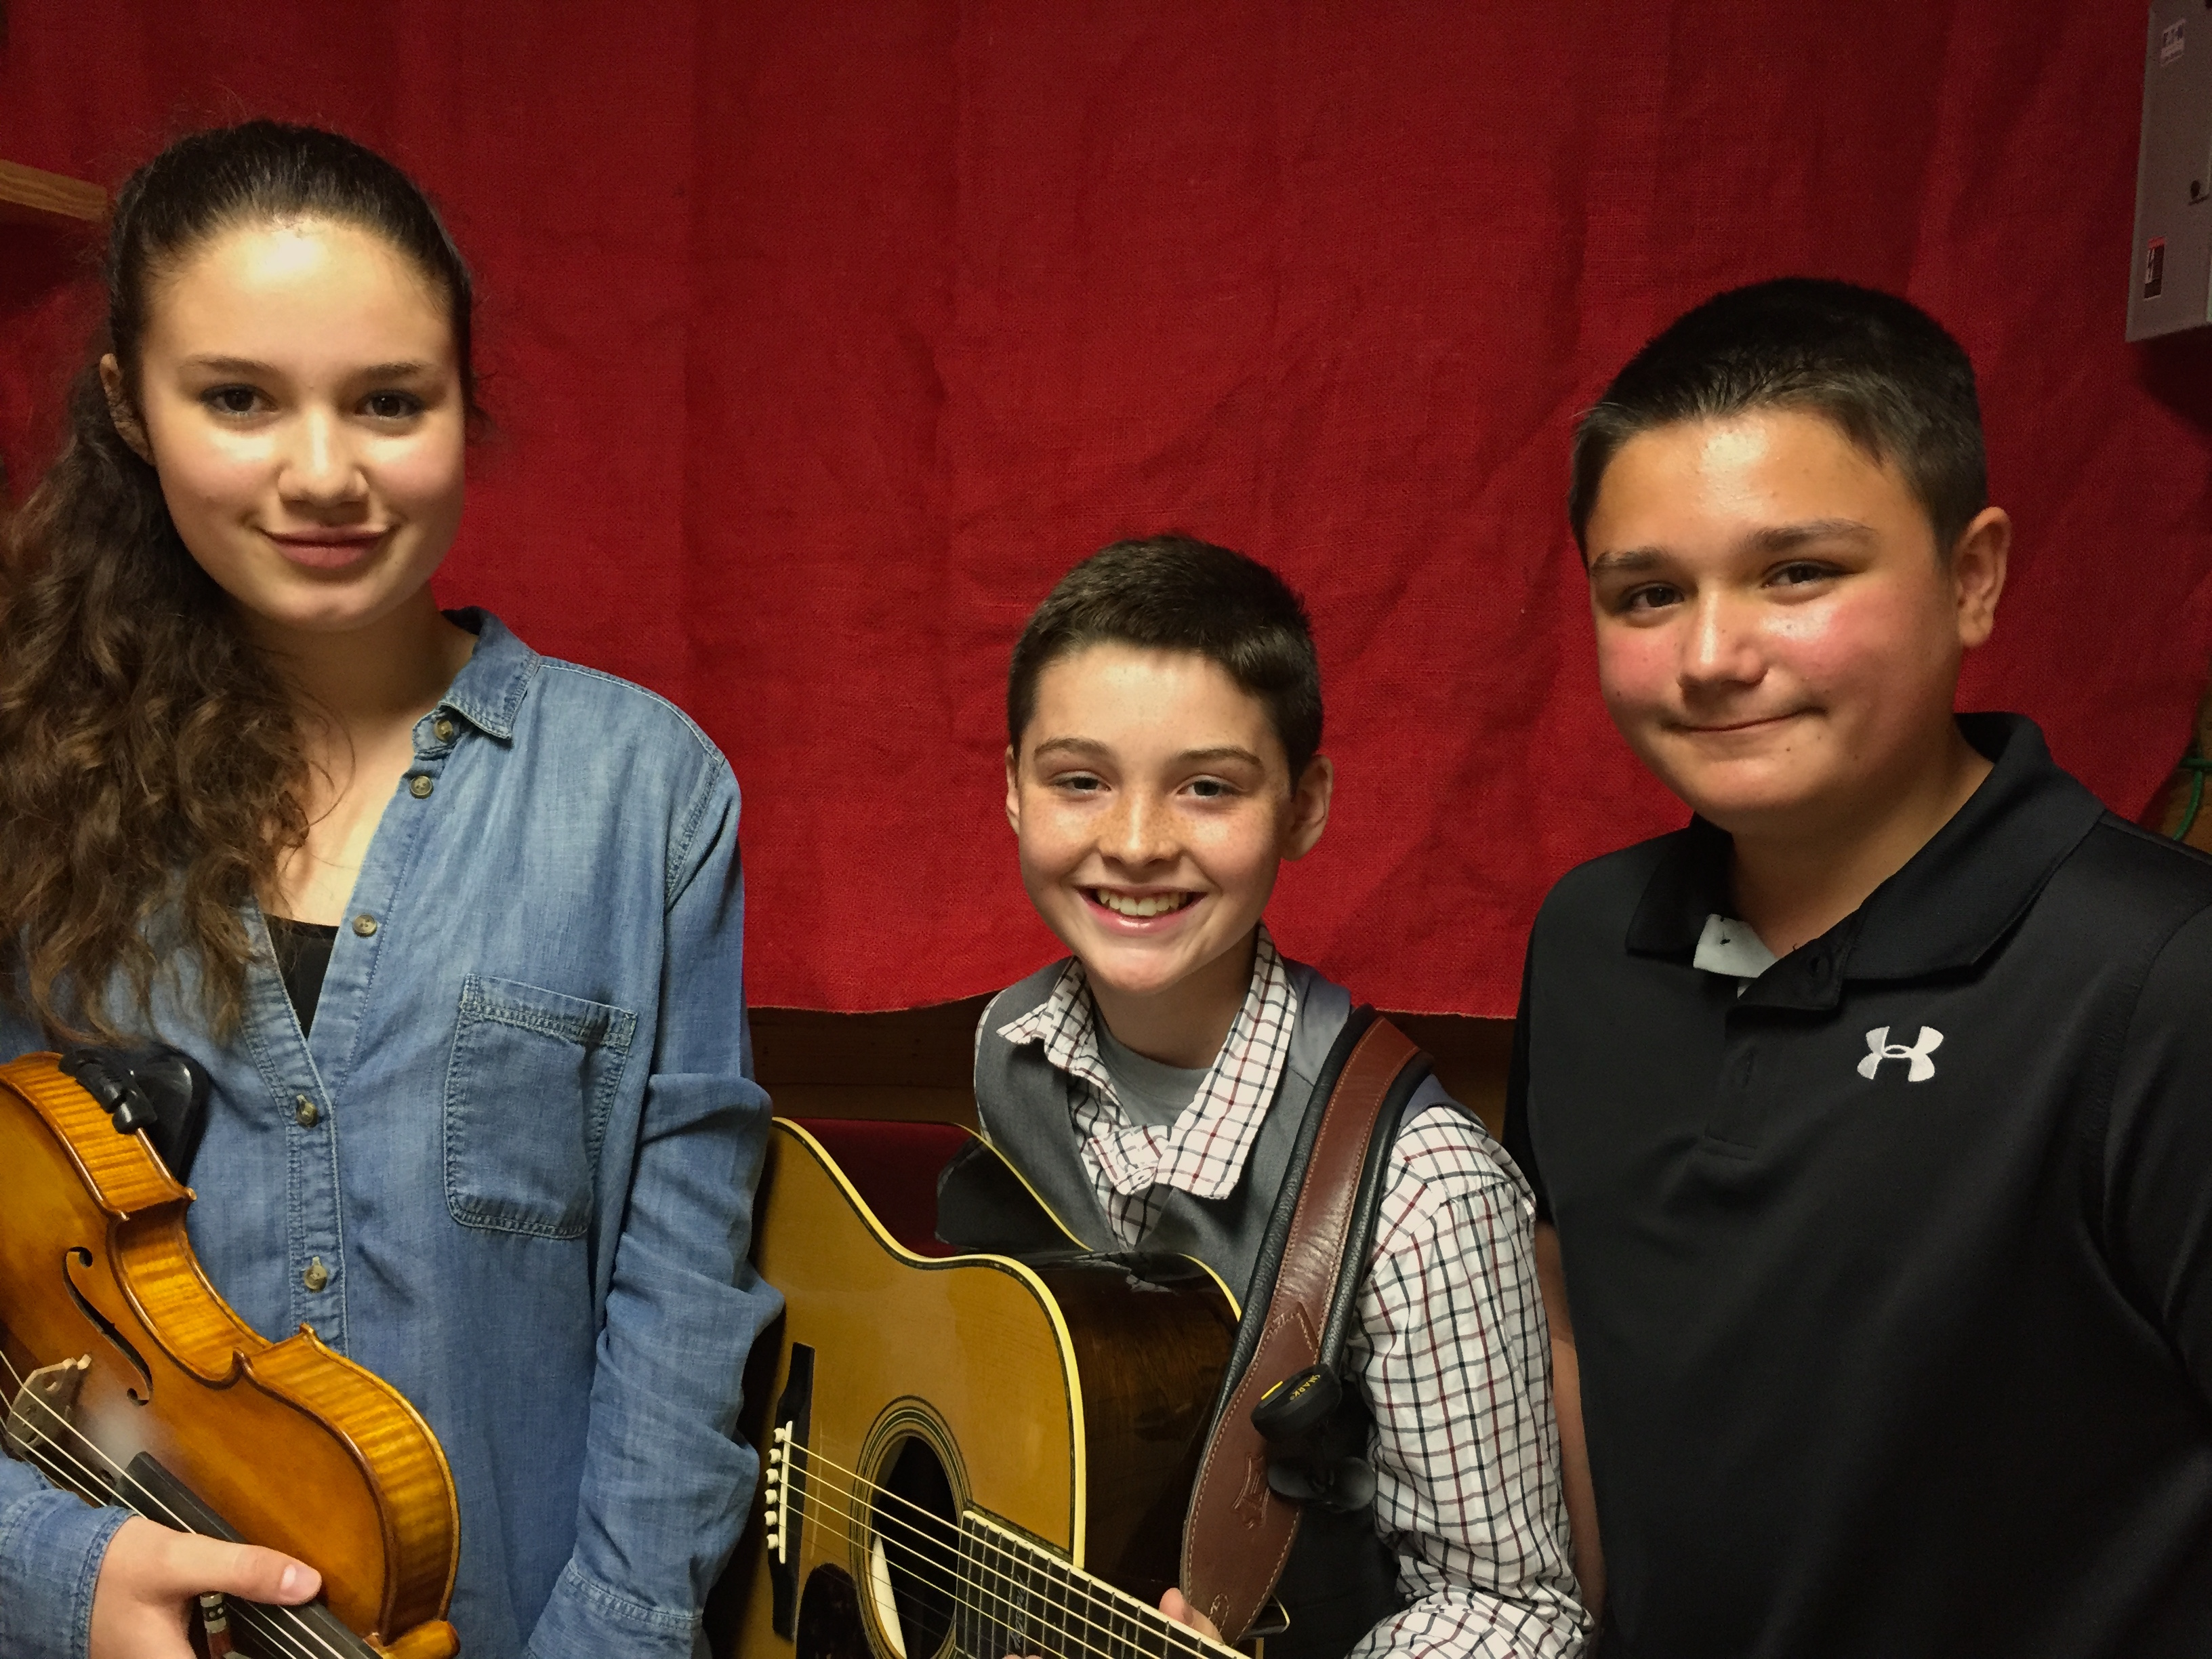 Caption: (L-R) Kitty Amaral, Presley Barker and Kyser George are three powerful players out of an exciting new generation of old time and bluegrass musicians bringing enthusiasm, training and great chops to the field.   , Credit: Paul Brown